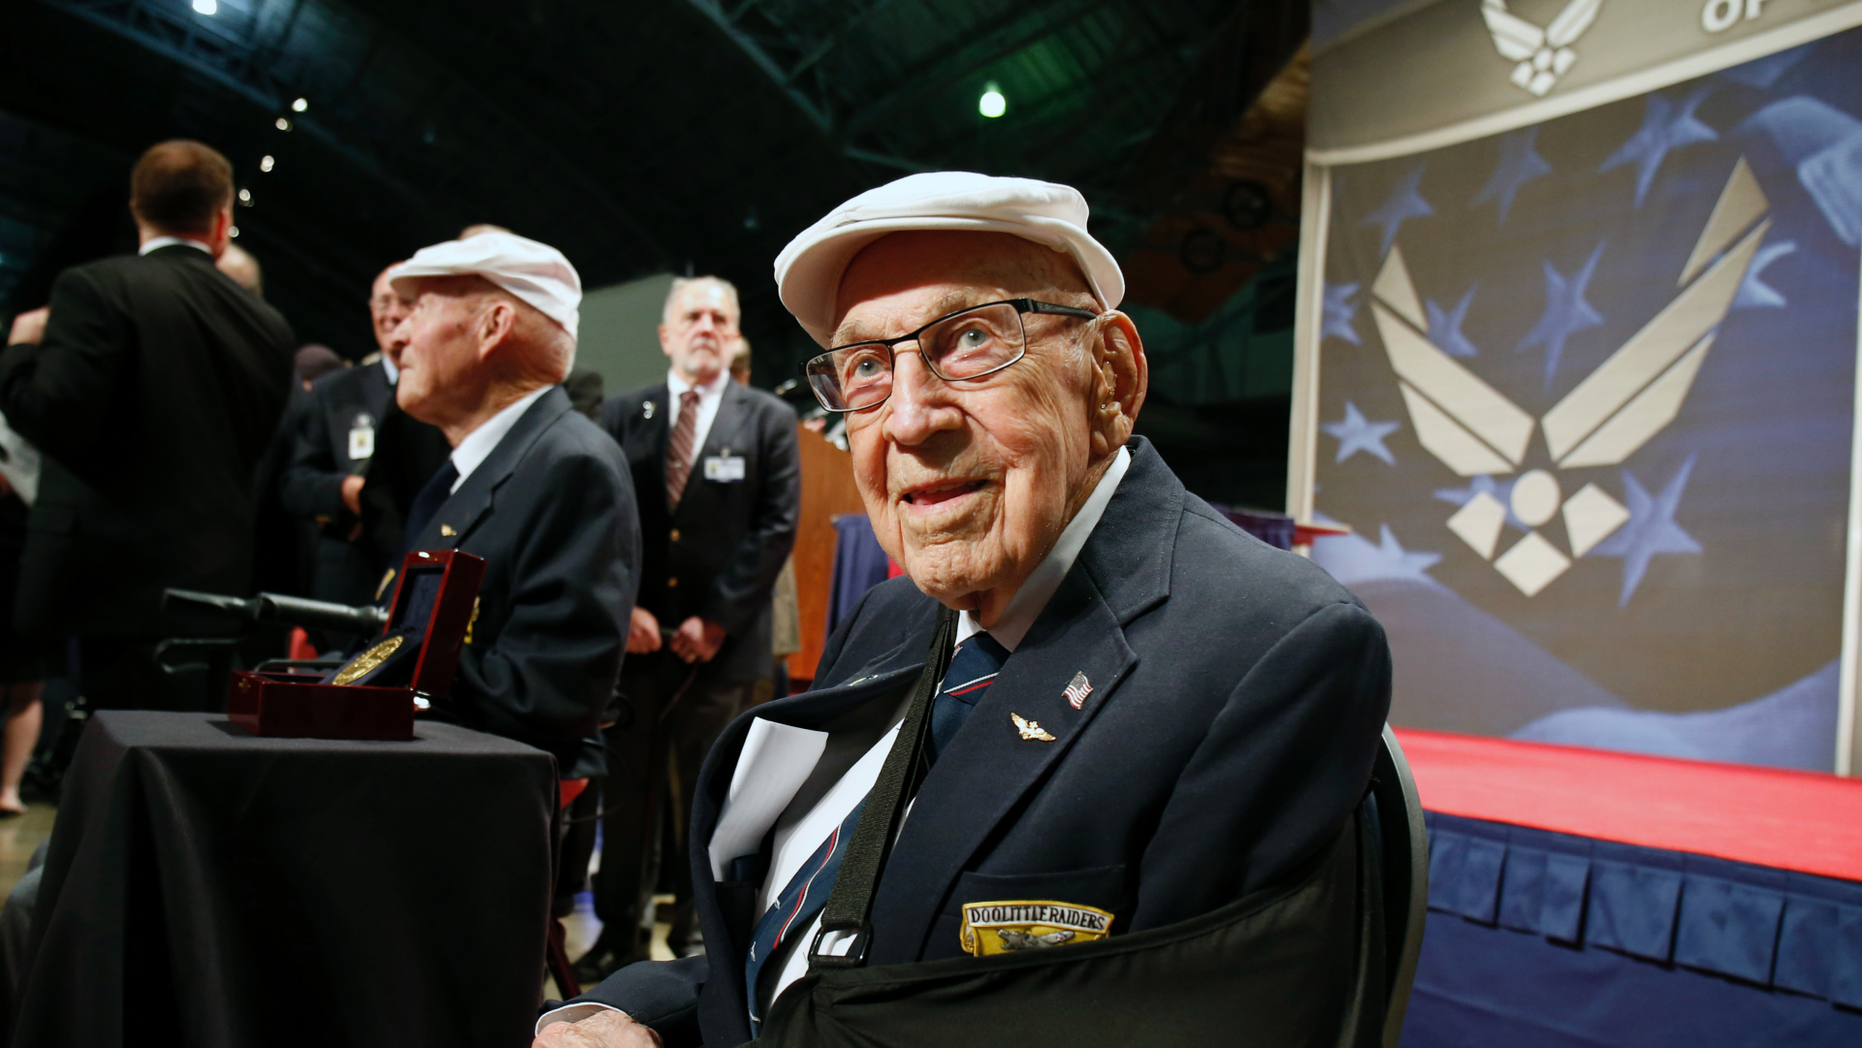 "FILE - In this April 18, 2015, file photo, two members of the Doolittle Tokyo Raiders, retired U.S. Air Force Lt. Col. Richard ""Dick"" Cole, seated front, and retired Staff Sgt. David Thatcher, seated left, pose for photos after the presentation of a Congressional Gold Medal honoring the Doolittle Tokyo Raiders at the National Museum of the U.S. Air Force at Wright-Patterson Air Force Base in Dayton, Ohio. The last surviving Doolittle Tokyo Raider is still telling his World War II stories, and he enjoys hearing new ones passed down to younger generations. (AP Photo/Gary Landers, File)"